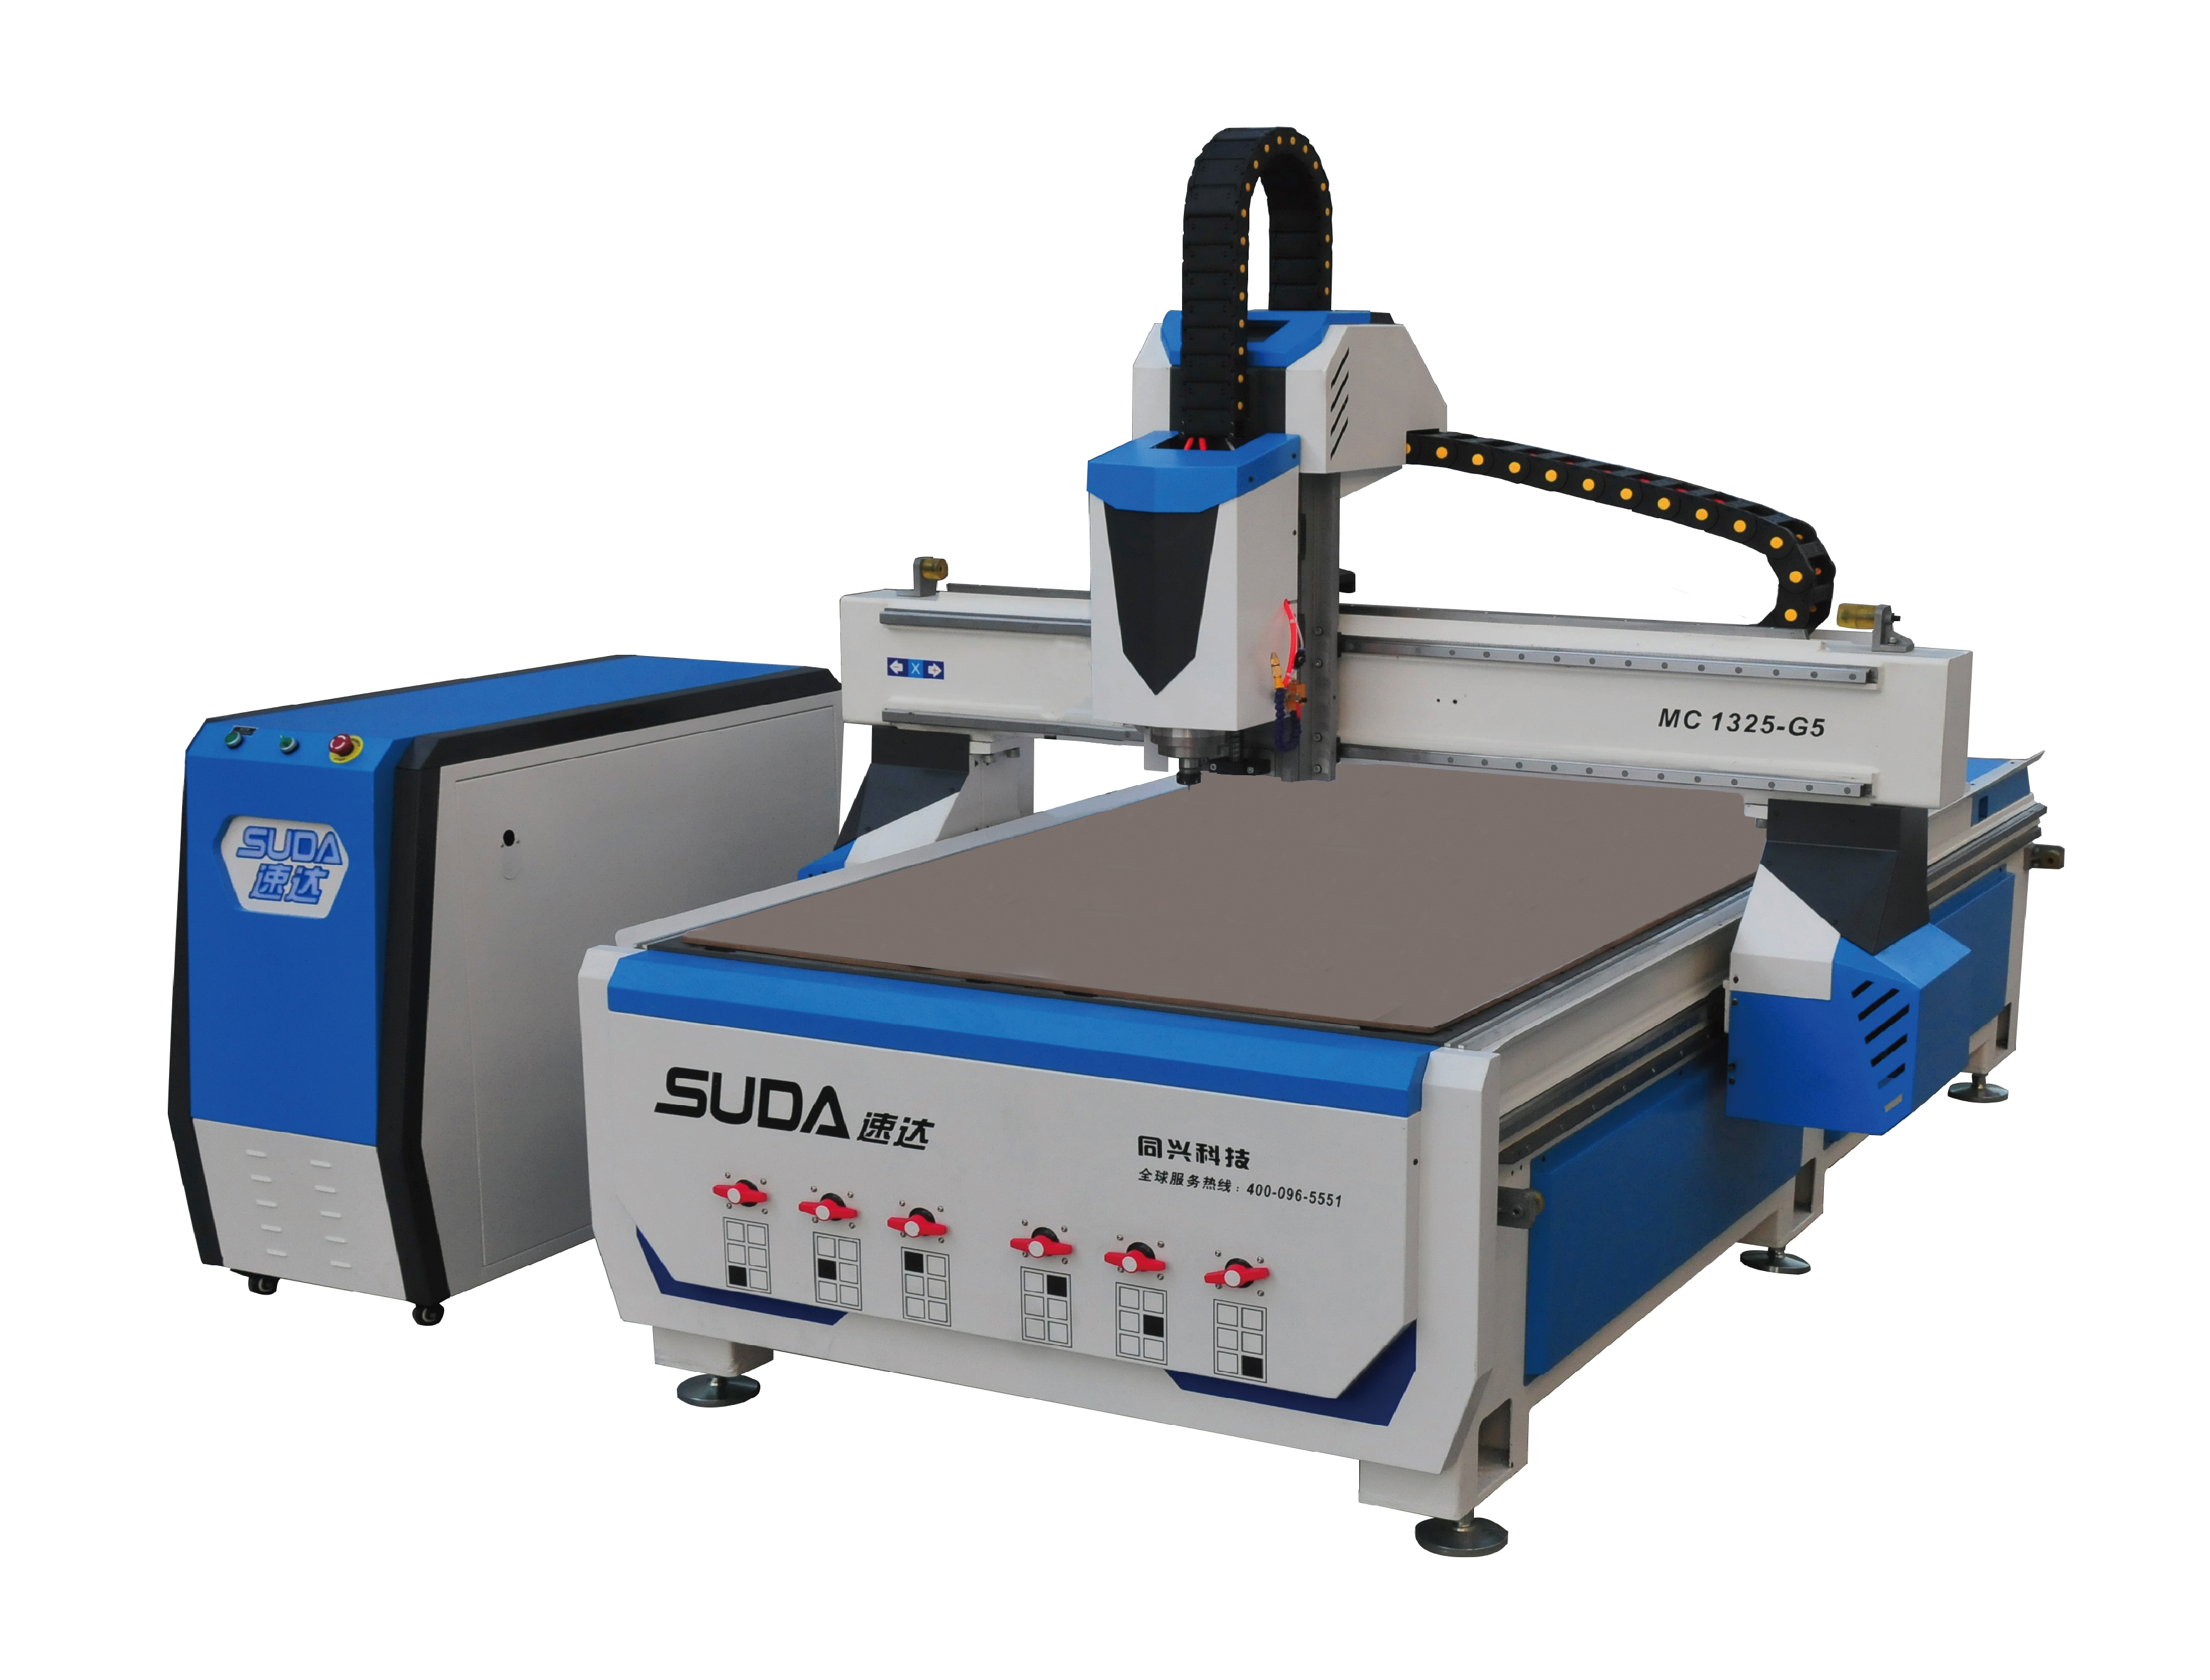 SUDA MC Series G5 CNC Router with CCD camera